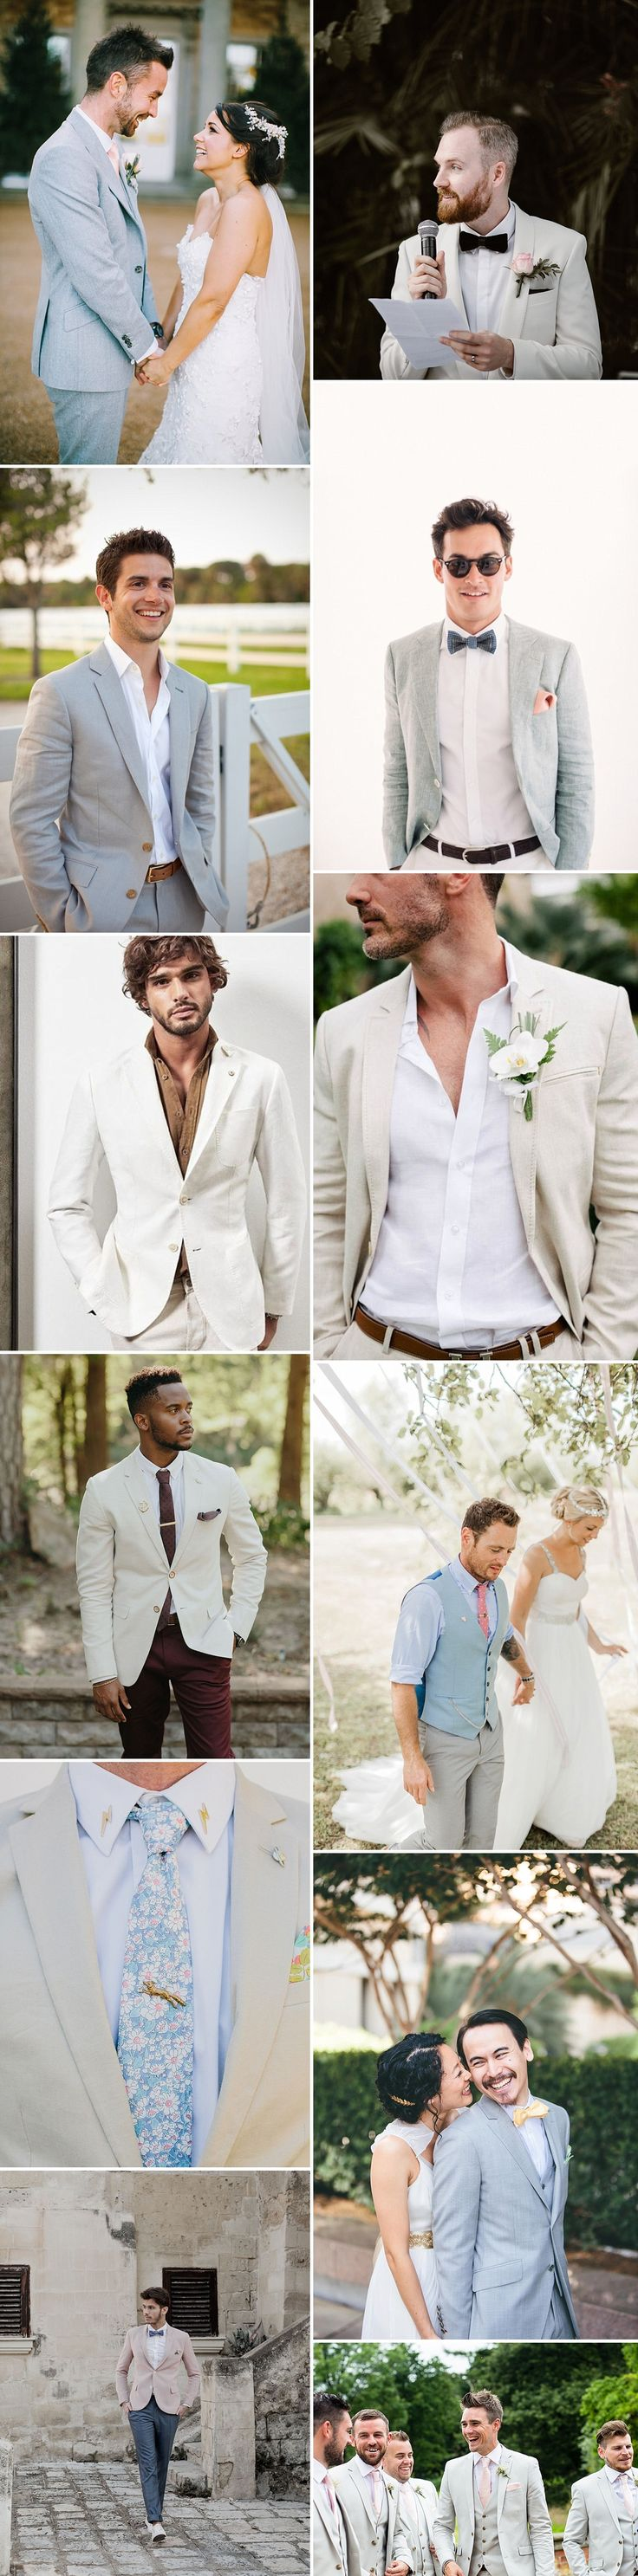 Groom Wearing Light Coloured Jacket For Wedding | Groom Fashion Inspiration